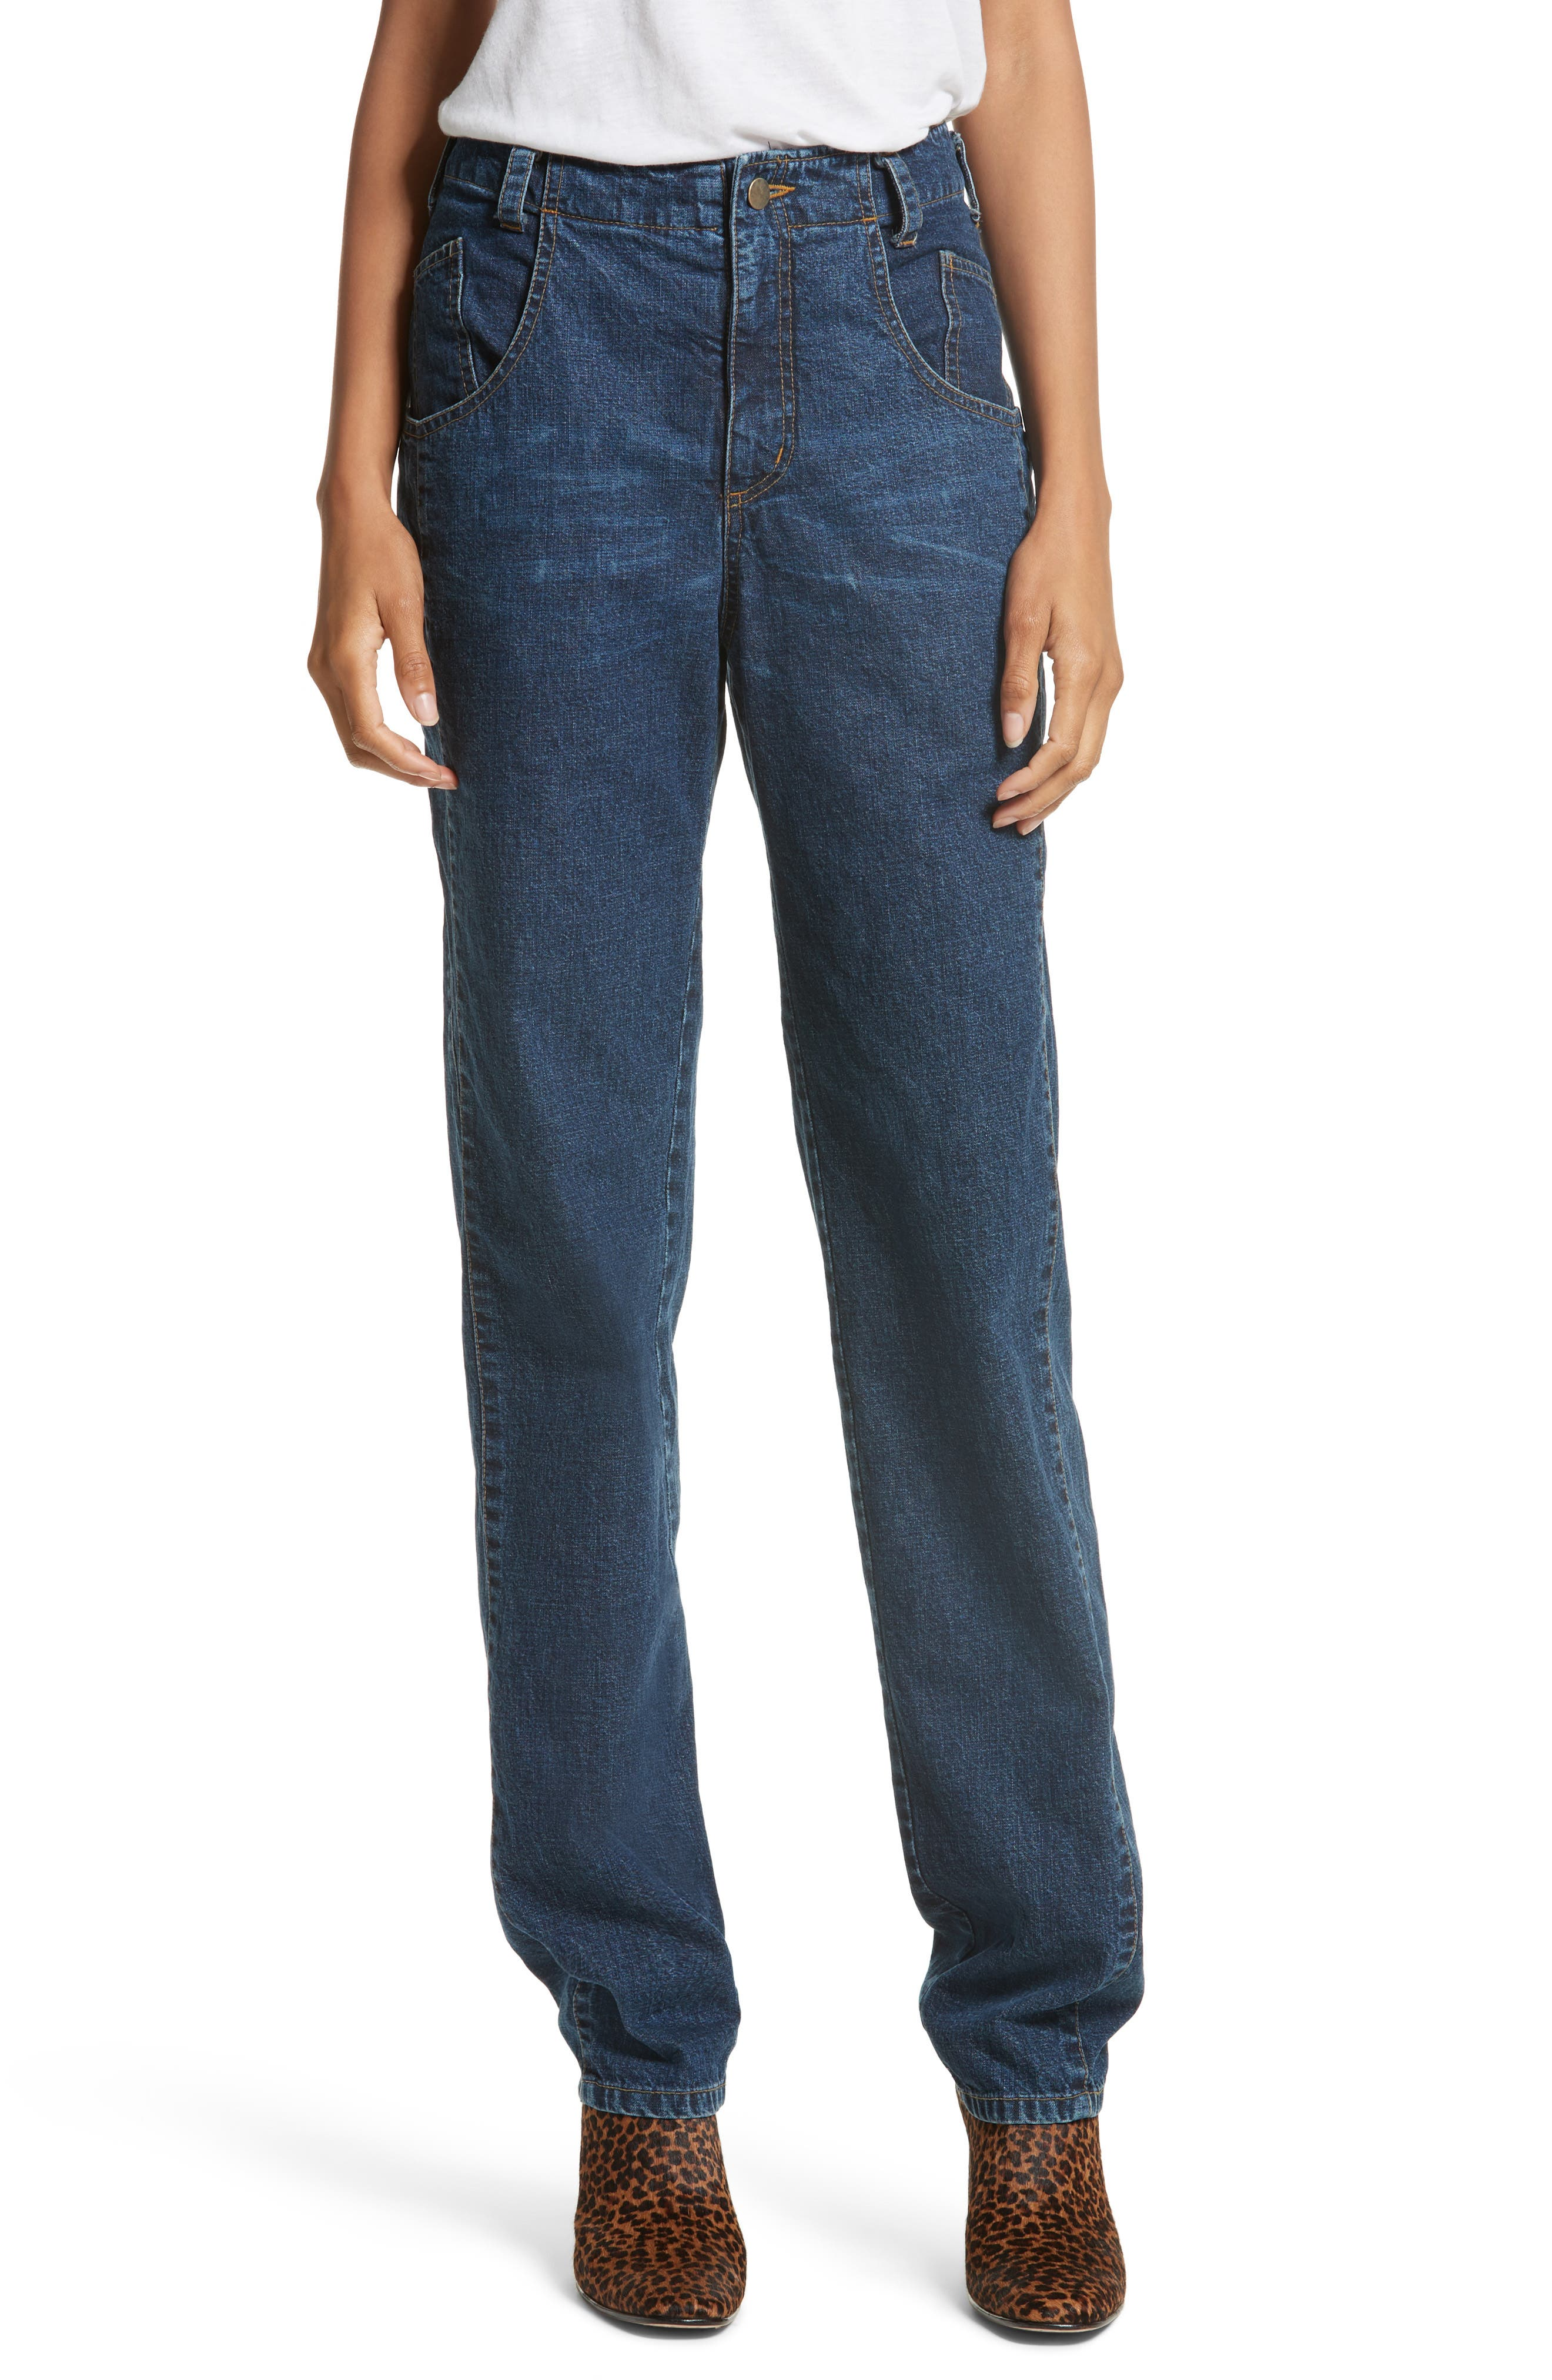 Alternate Image 1 Selected - Rachel Comey Long Trigger Straight Leg Jeans (Classic Indigo)